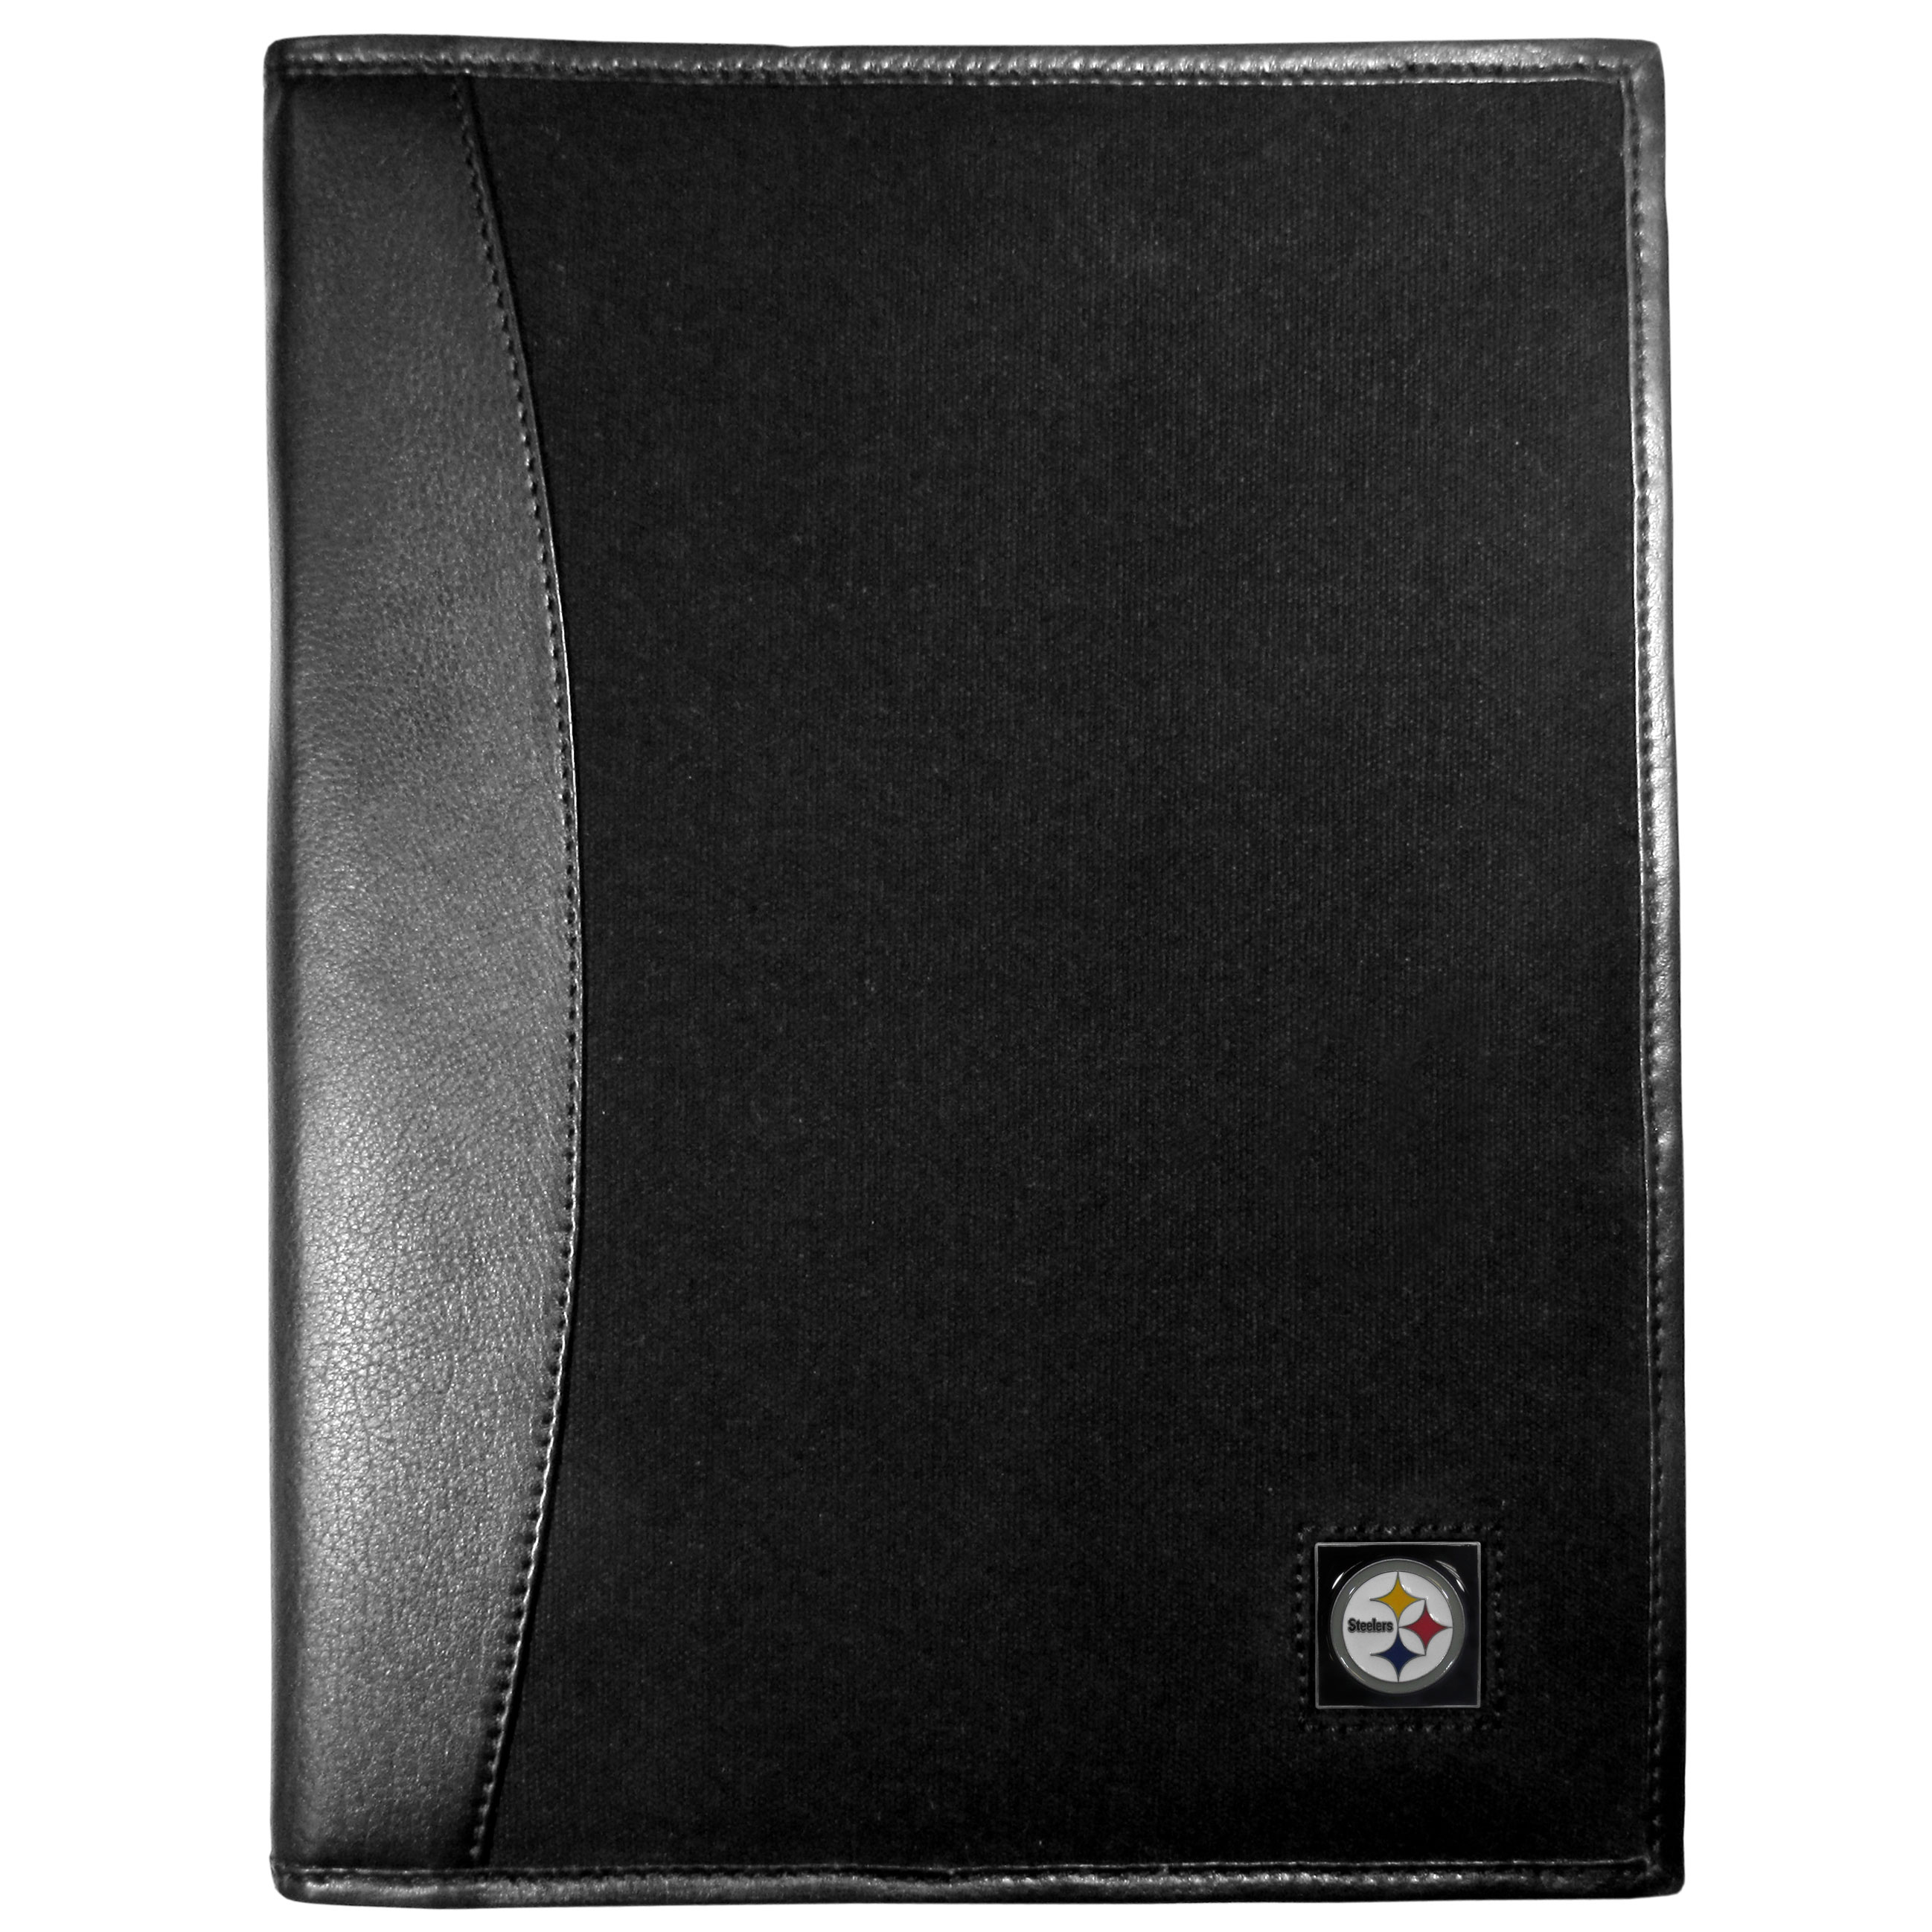 Pittsburgh Steelers Leather and Canvas Padfolio - Our leather and canvas padfolio perfectly blends form and function. The attractive portfolio is bound in fine grain leather with an attractive canvas finish and the interior is a soft nylon. This high quality business accessory also features a fully cast metal Pittsburgh Steelers emblem that is subtly set in the corner of the organizer. It is packed with features like 6 card slots for badges, business cards, hotel keys or credit cards and ID with a large pocket for loose papers and a writing tablet slot making it a must-have for the professional on the go.